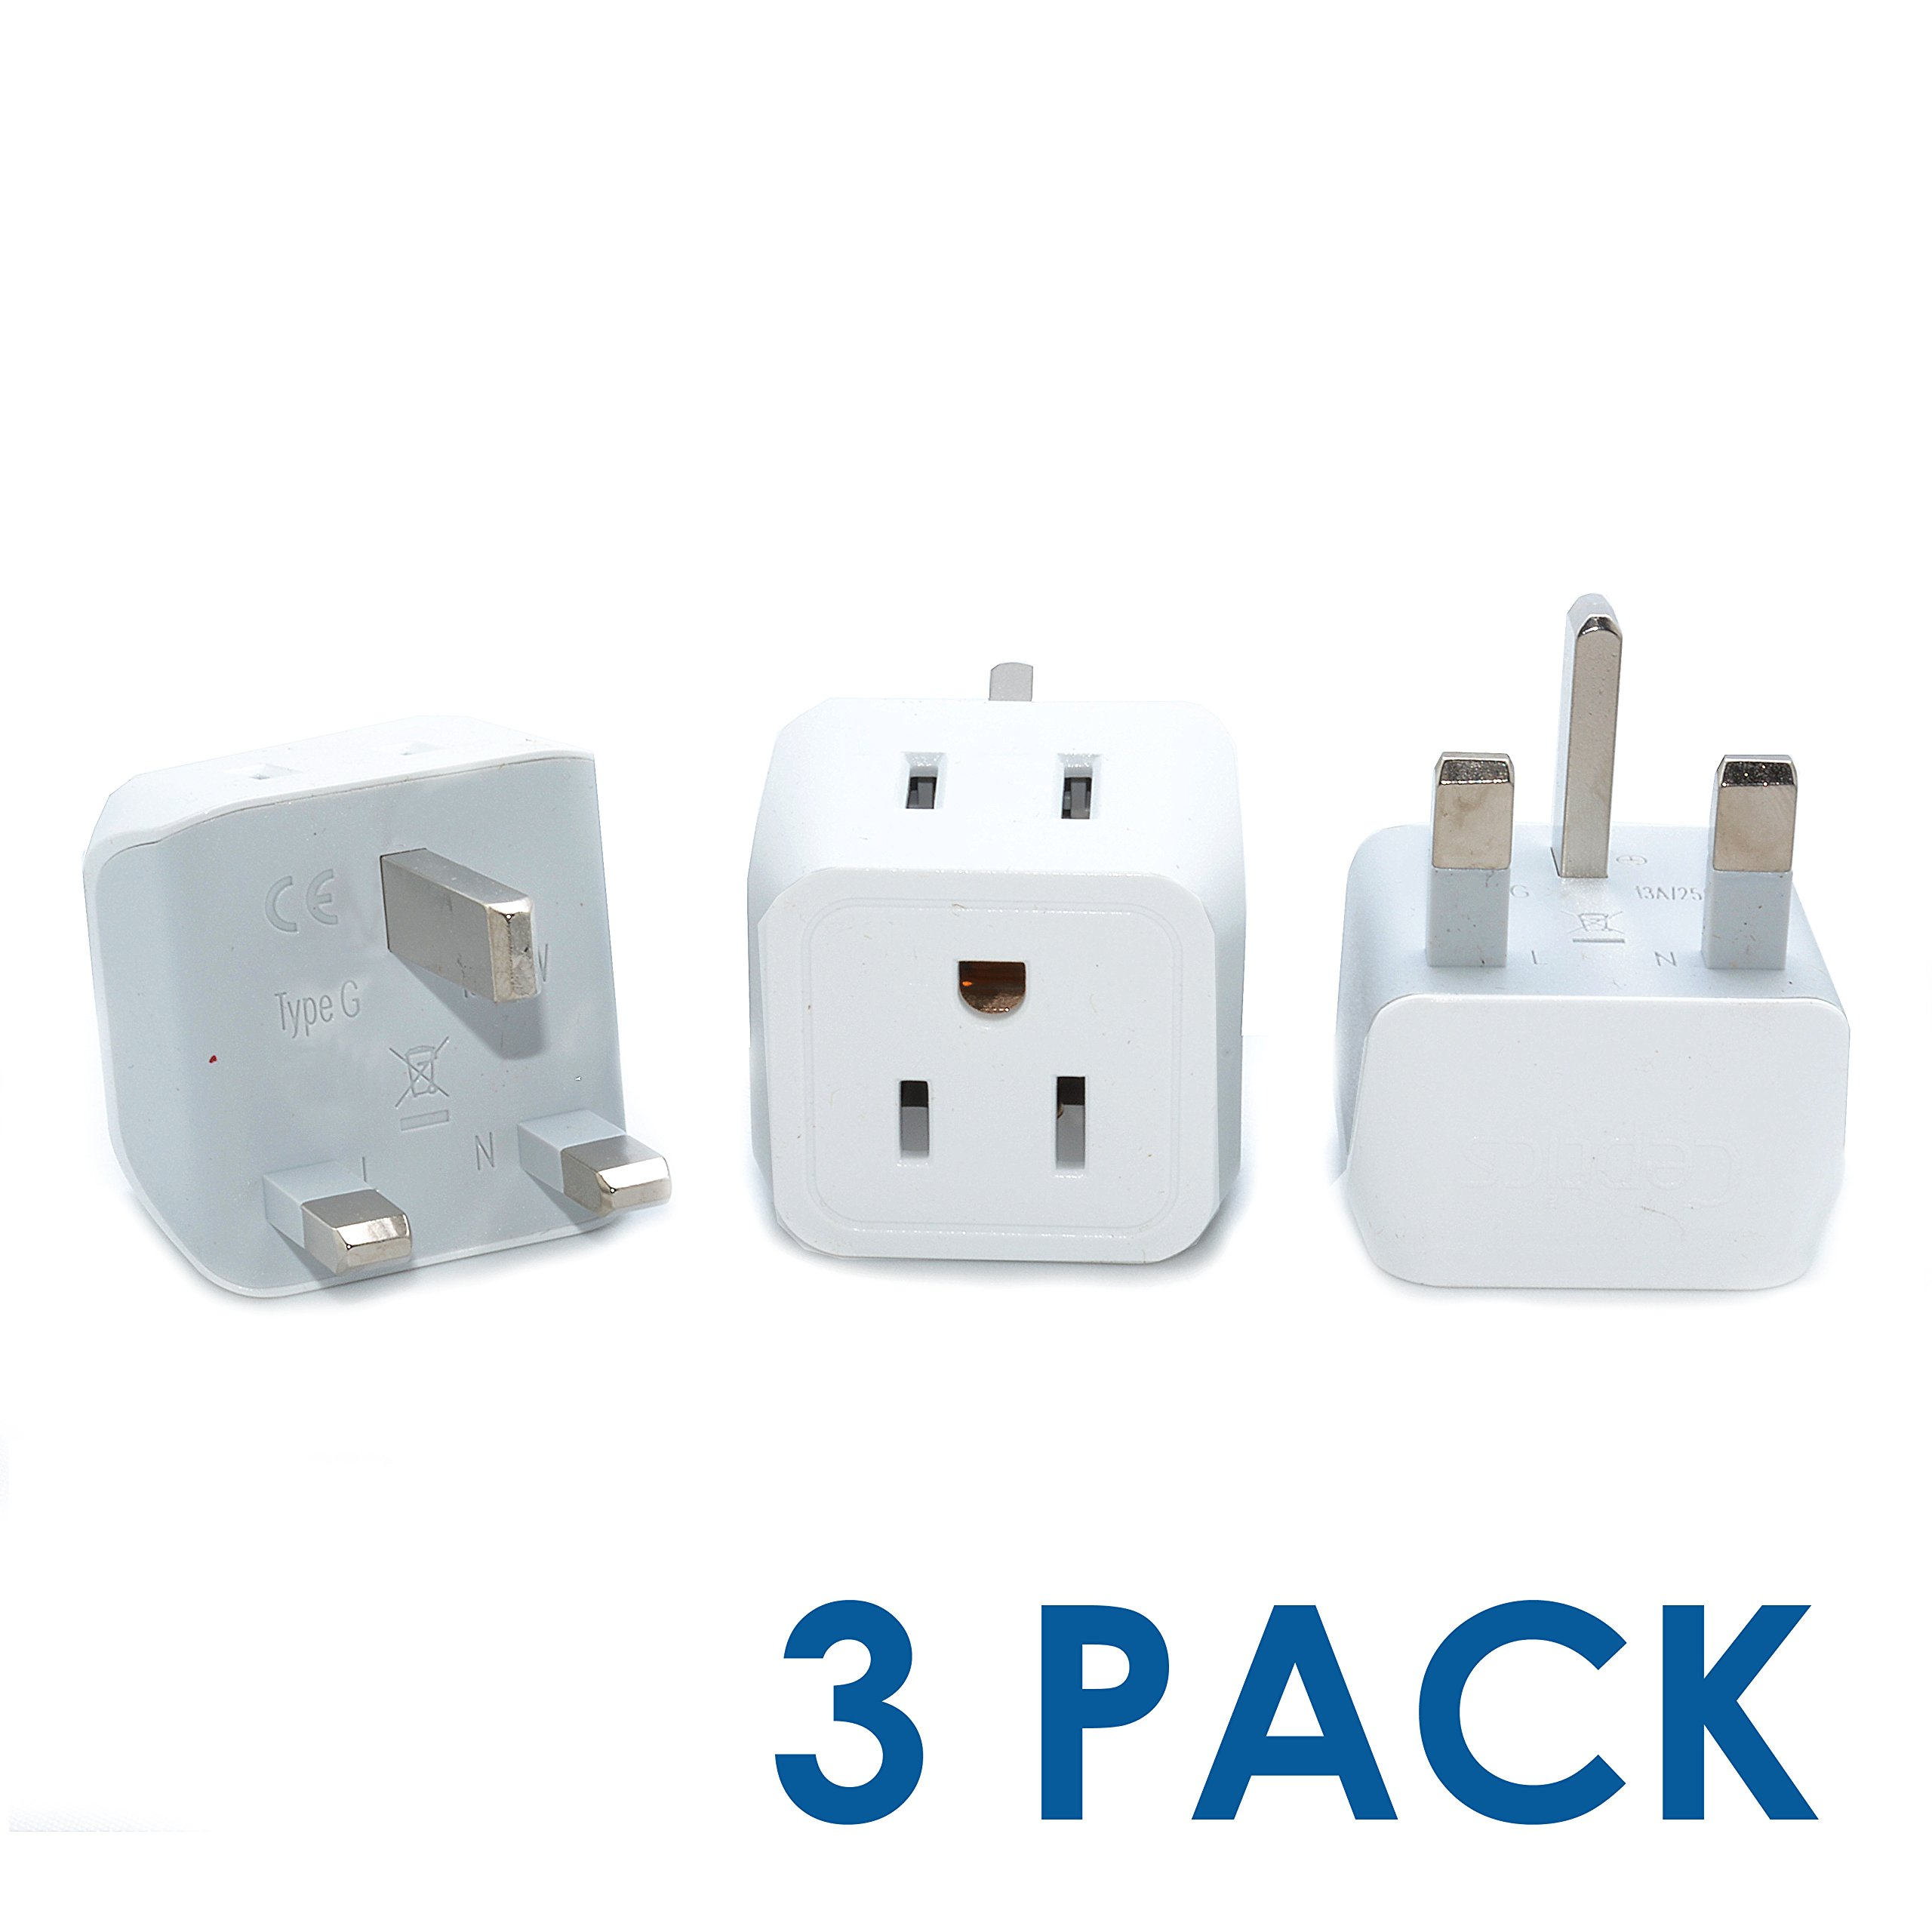 Ceptics USA to UK, Hong Kong Travel Adapter Plug - Type G (3 Pack) - Dual Inputs - Ultra Compact (Does Not Convert Voltage)